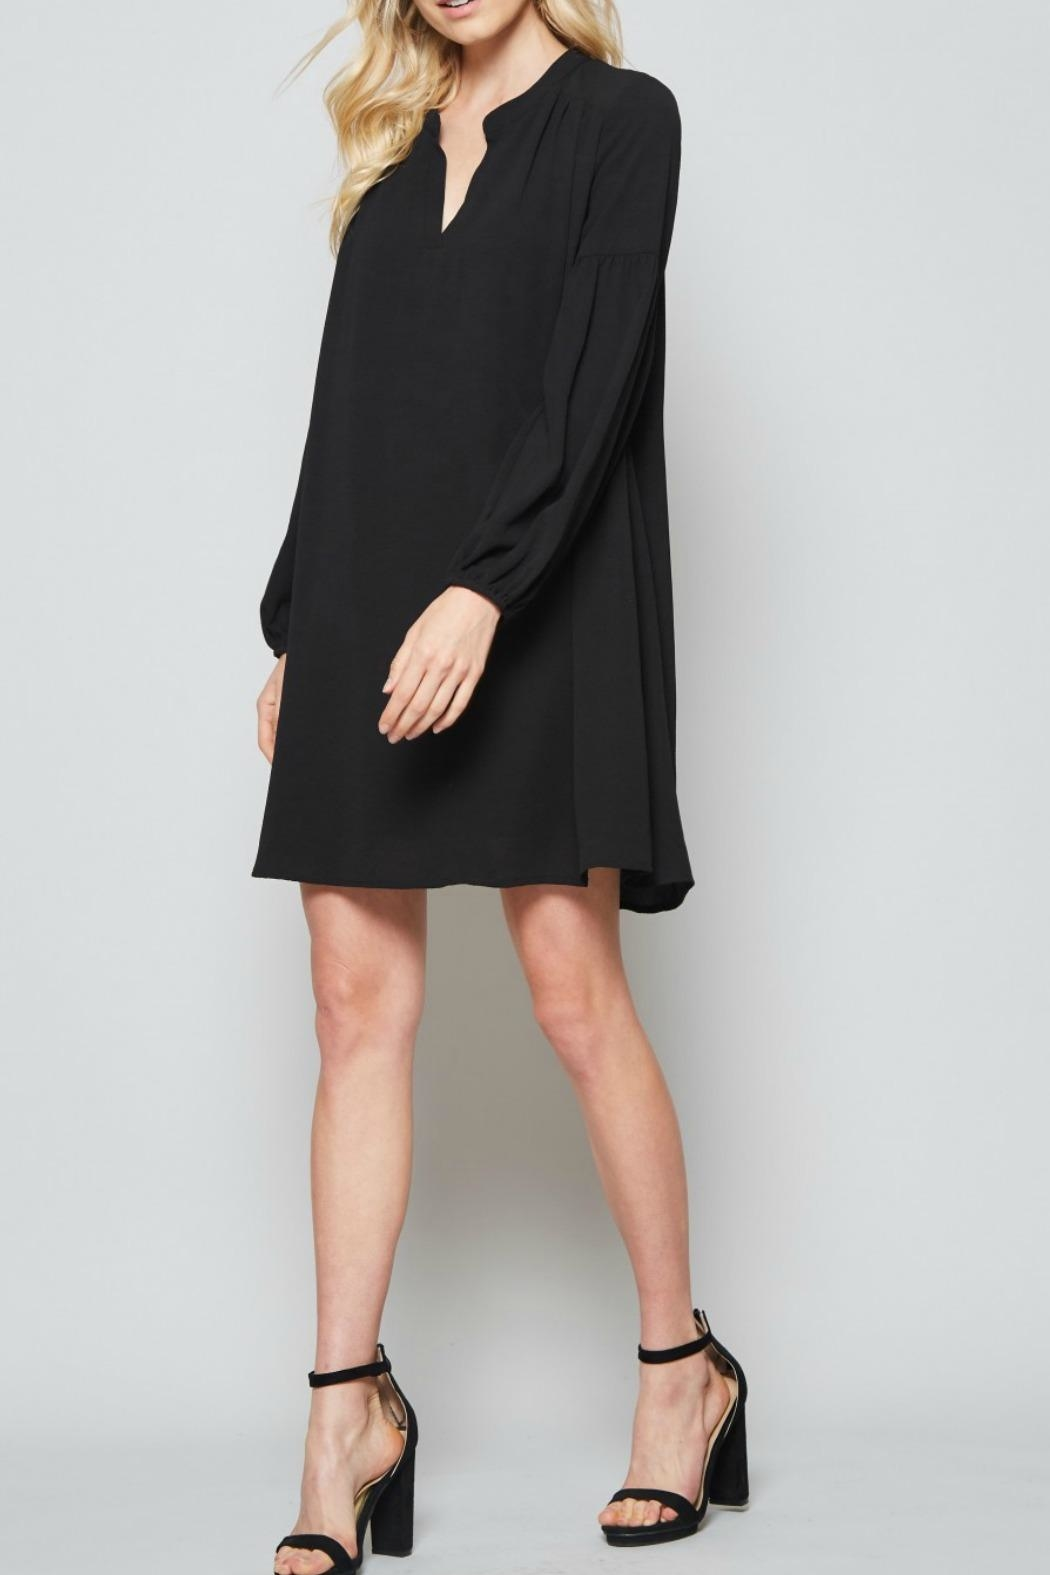 Andree by Unit Black Shift Dress - Side Cropped Image